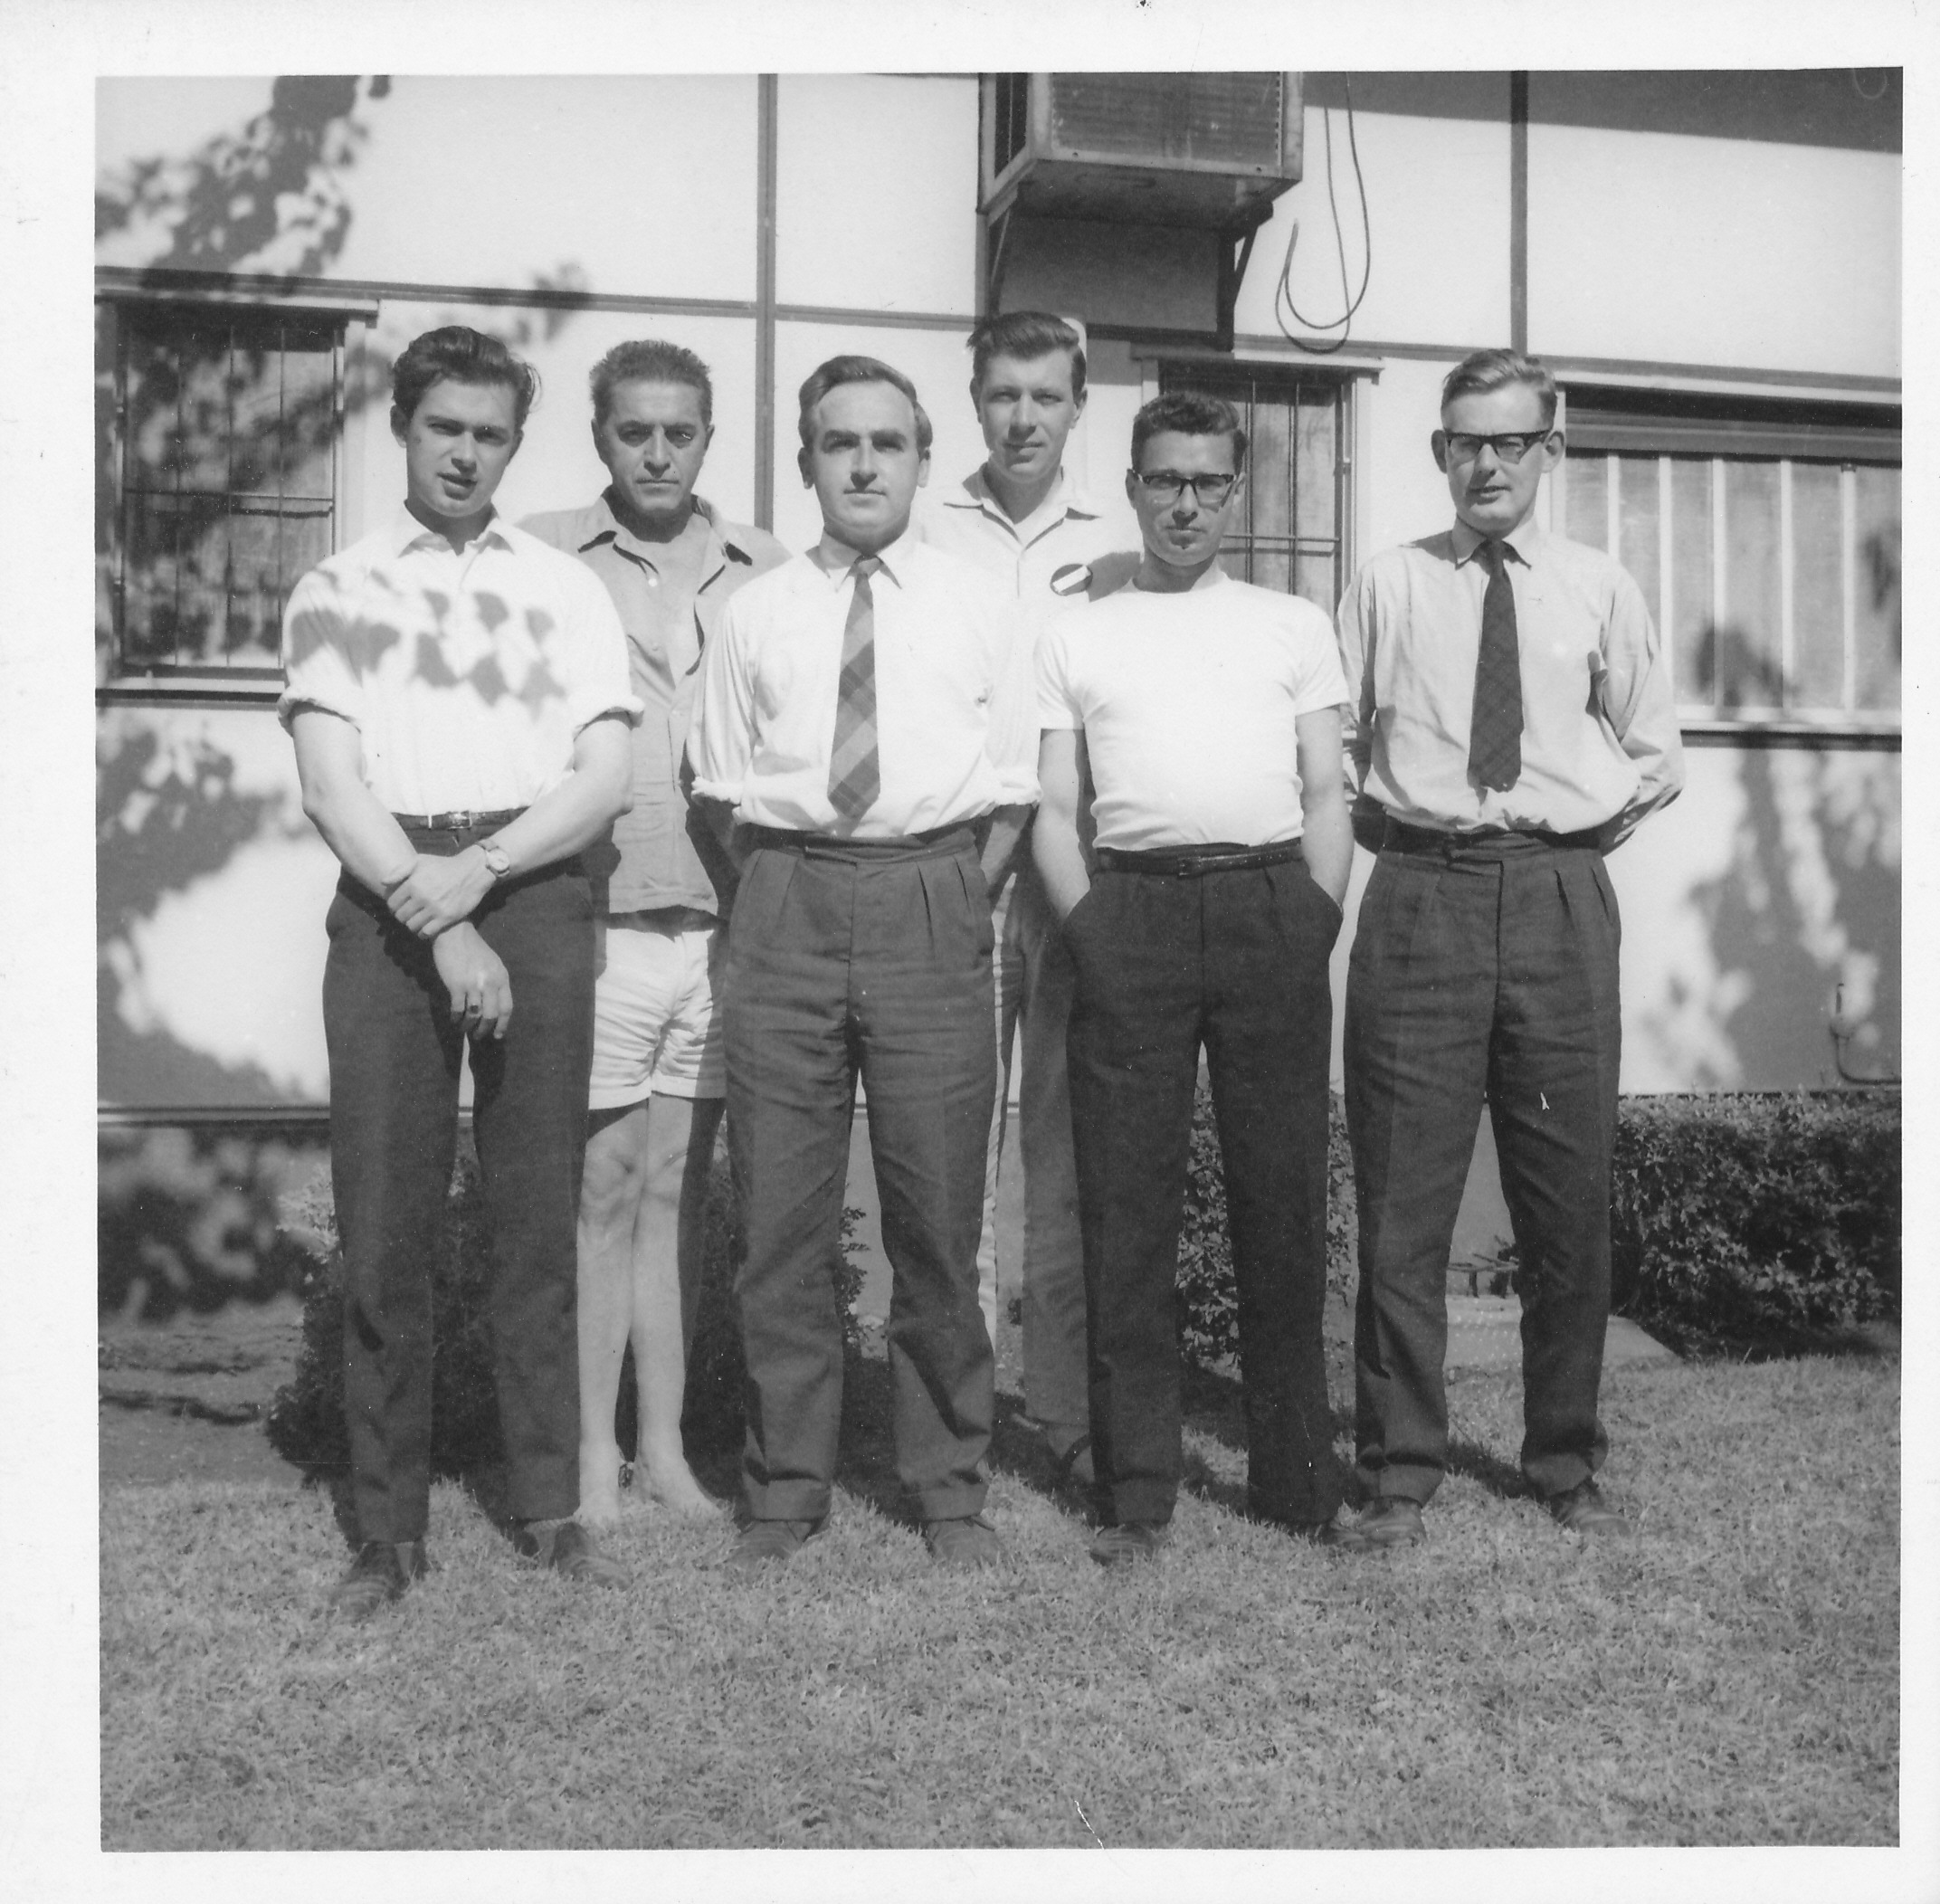 The 1964 England Olympiad (Tel Aviv) Team : Owen Hindle, Čeněk Kottnauer, Peter Clarke, Michael Franklin, Norman Littlewood & Michael Haygarth